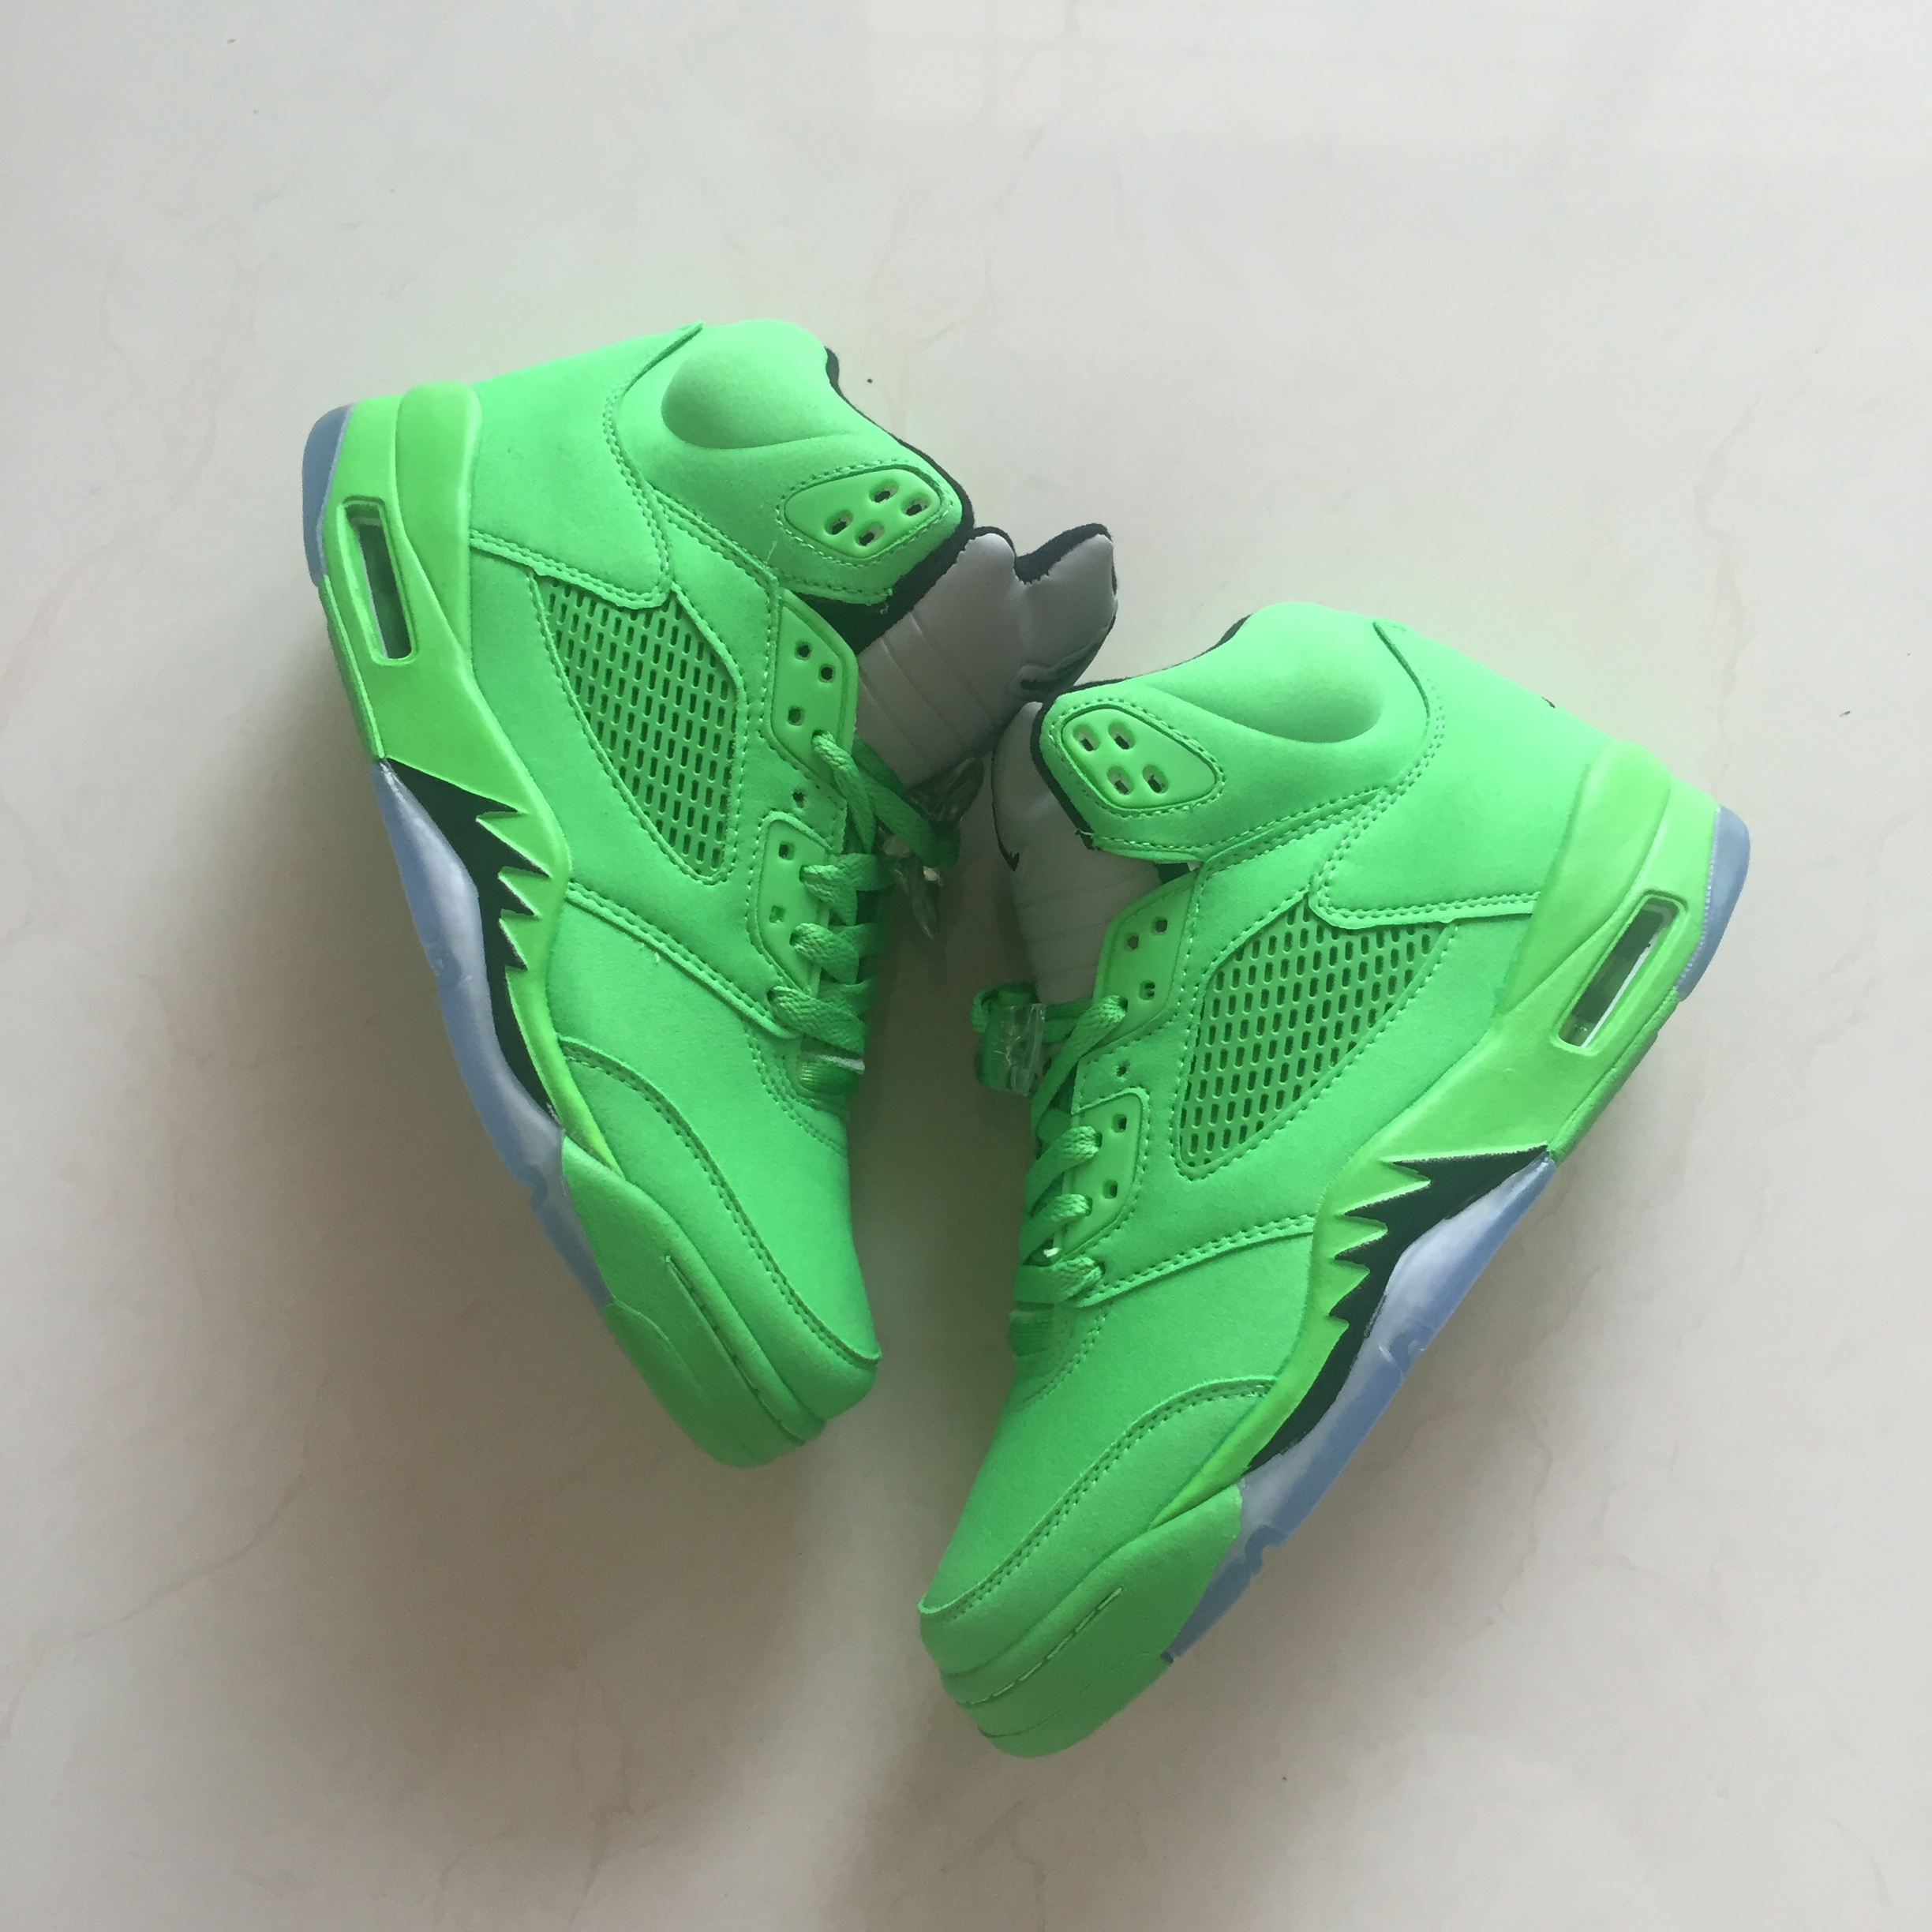 new style 18b8e 8ab6d 2018 Men Air Jordan 5 All Green Shoes [18women51102 ...